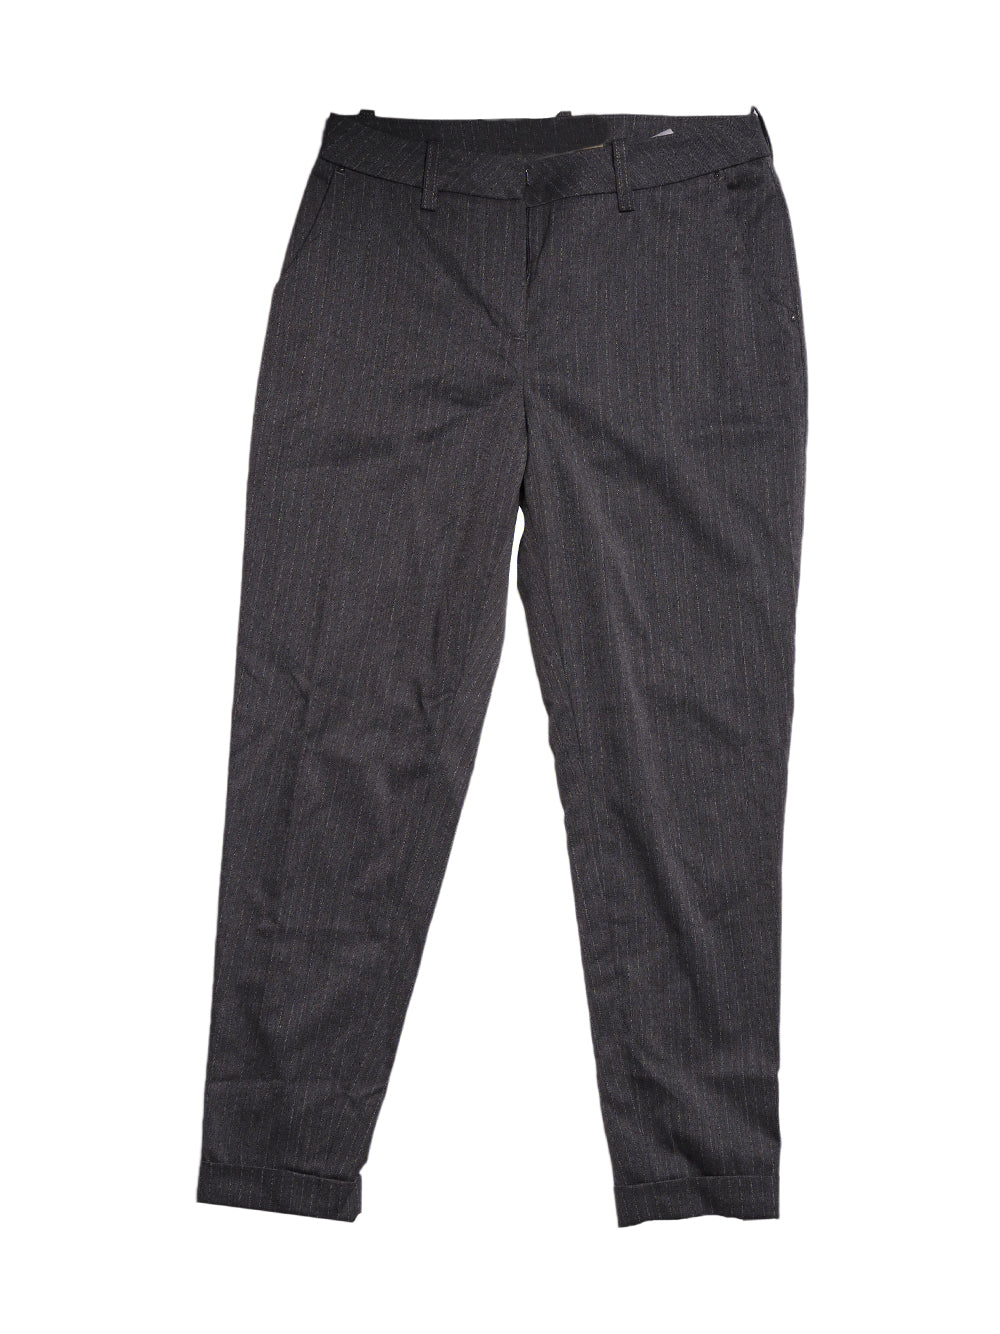 Front photo of Preloved Met Grey Woman's trousers - size 10/M